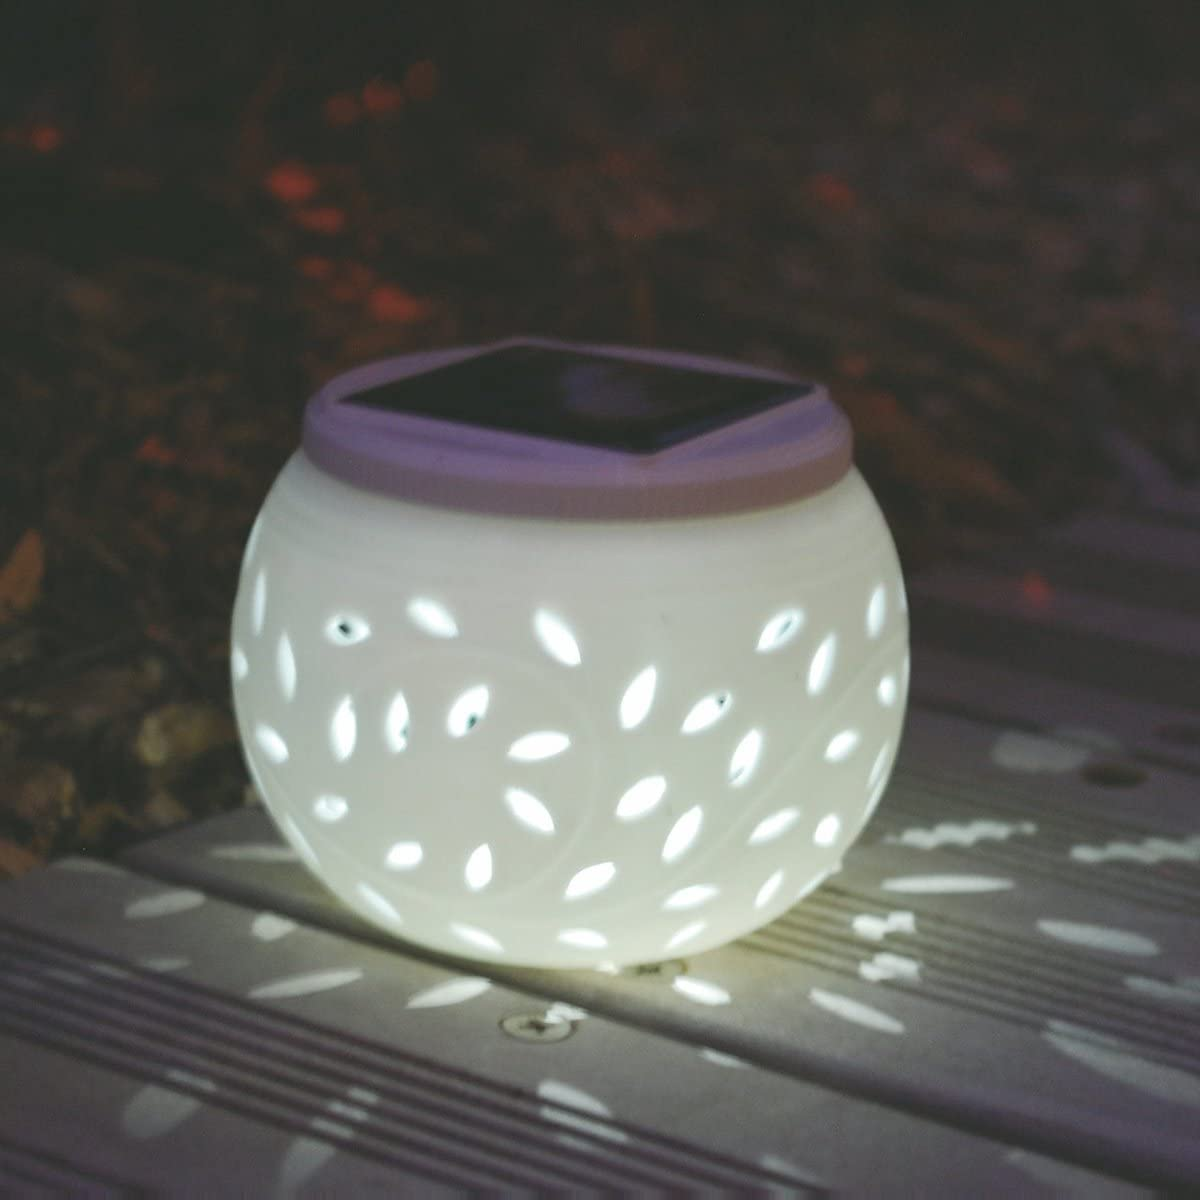 LEDMOMO LED Solar Ceramic Table Lights Garden Lights Colorful Solar Night Lights Lamp Waterproof for Party Home Yard Patio Outdoor Indoor Decoration